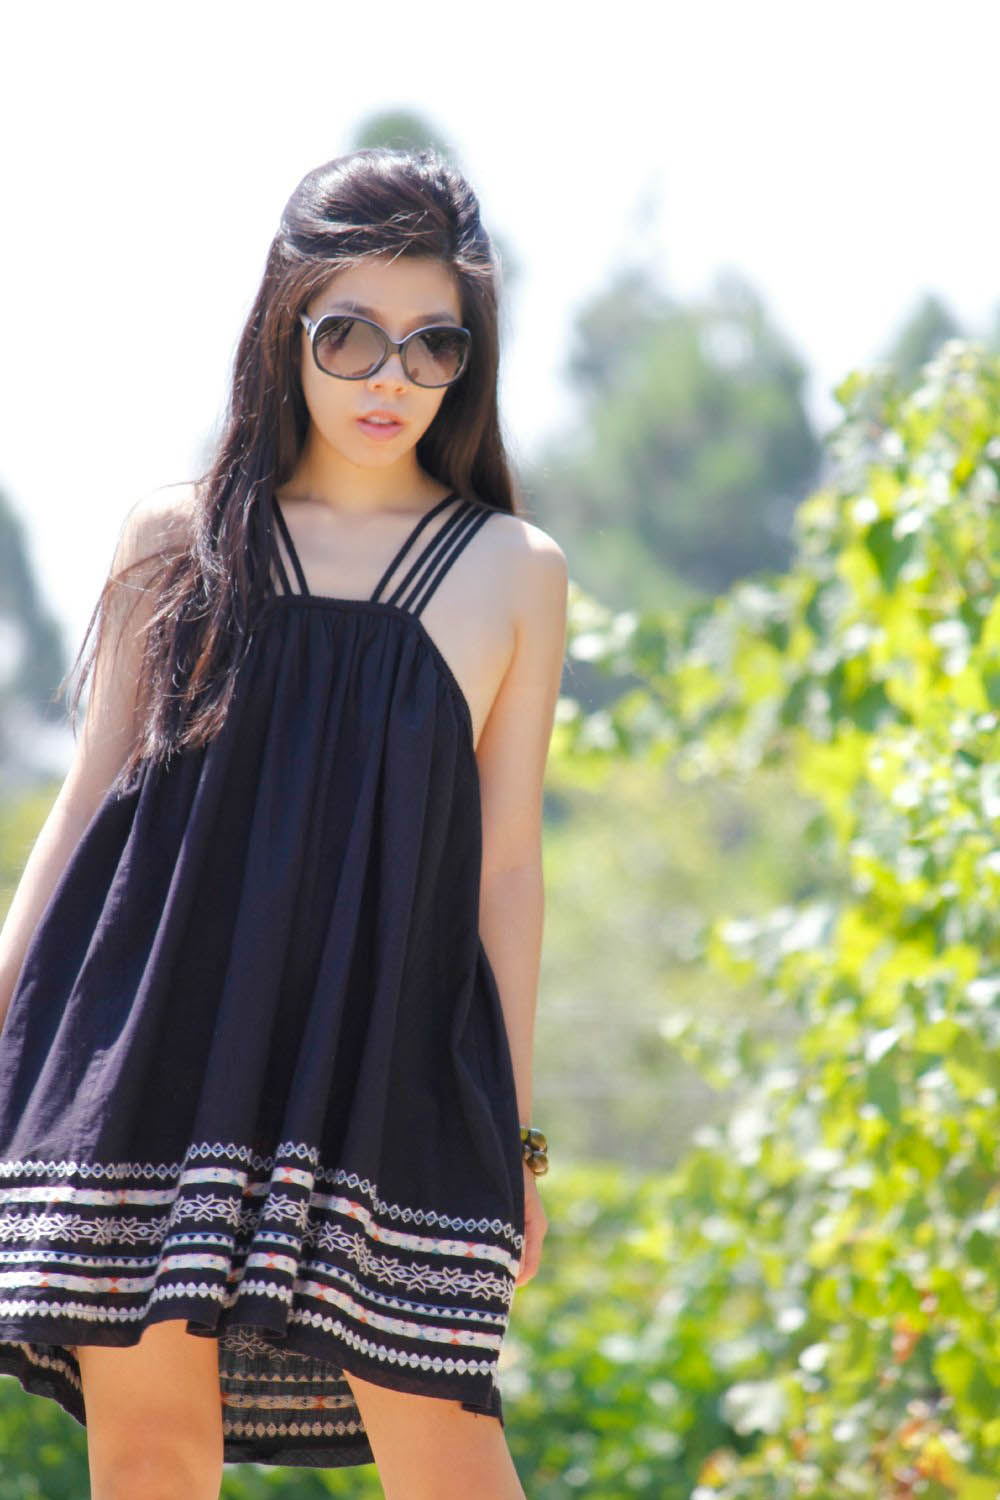 What to Wear to Coachella - Black Boho Dress